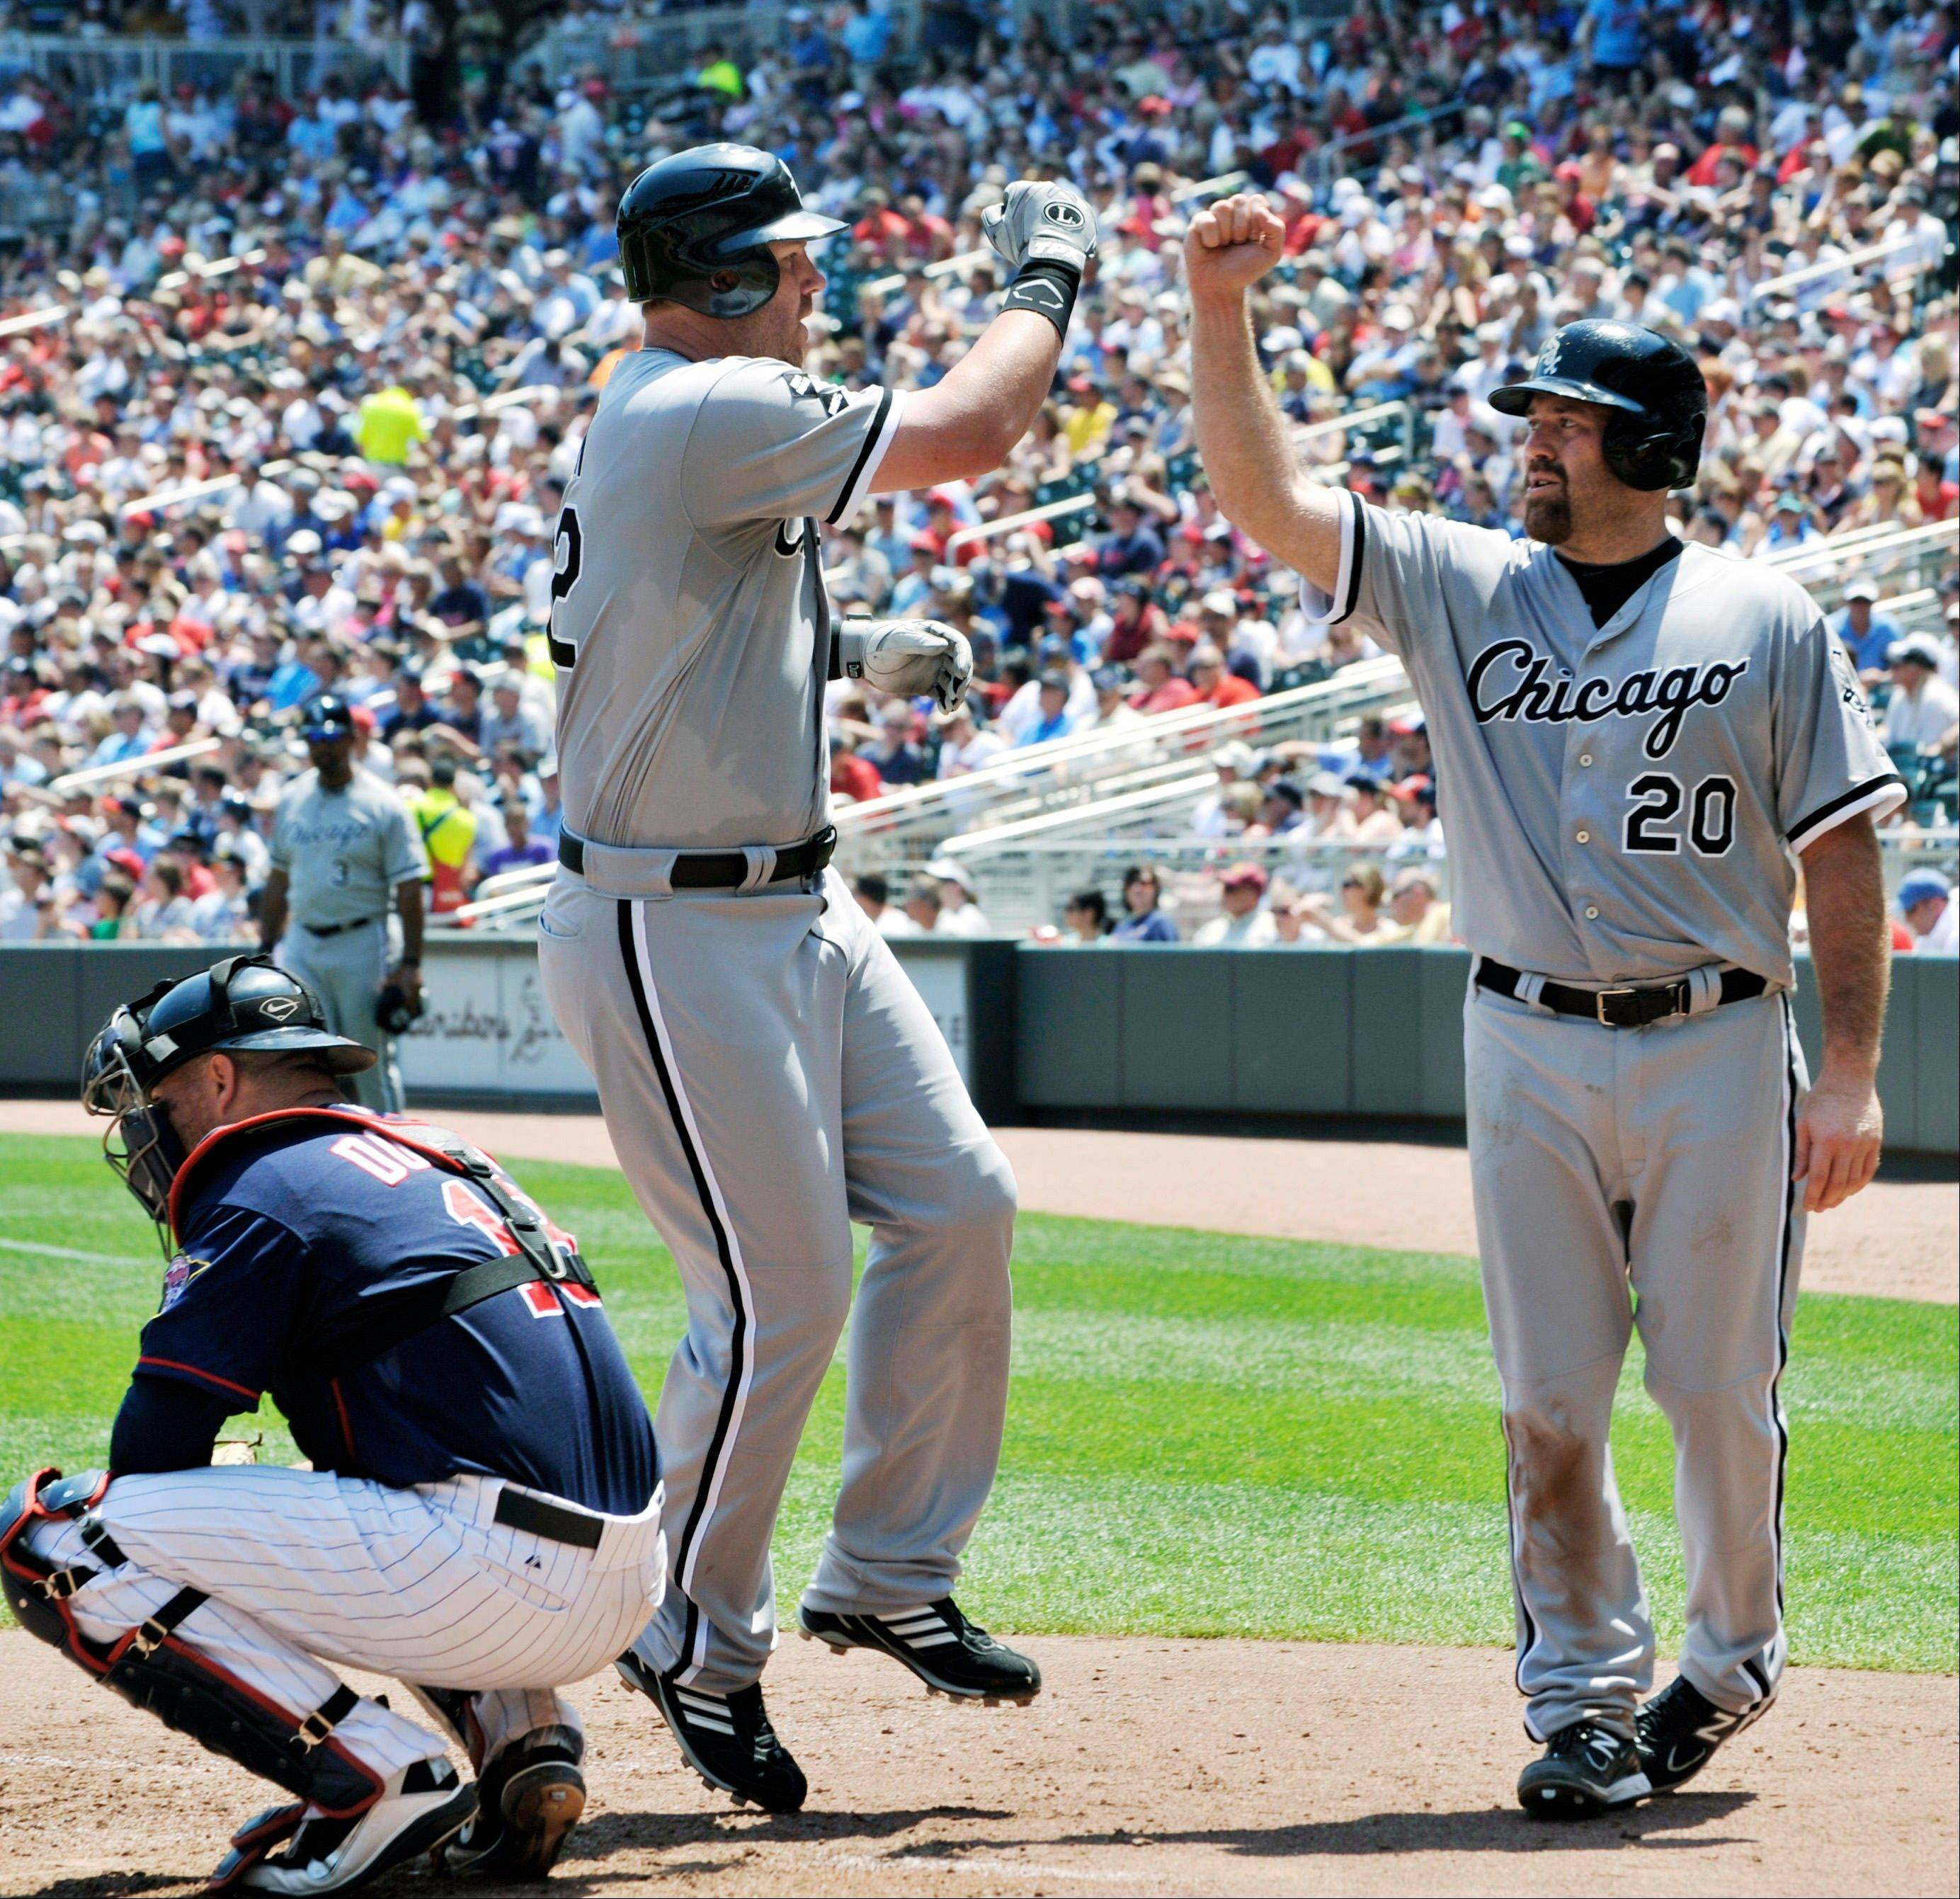 White Sox third baseman Kevin Youkilis, right, celebrates with Adam Dunn after Dunn's three-run home run off Minnesota Twins pitcher Nick Blackburn Wednesday during the fifth inning in Minneapolis. At left is Twins catcher Ryan Doumit.